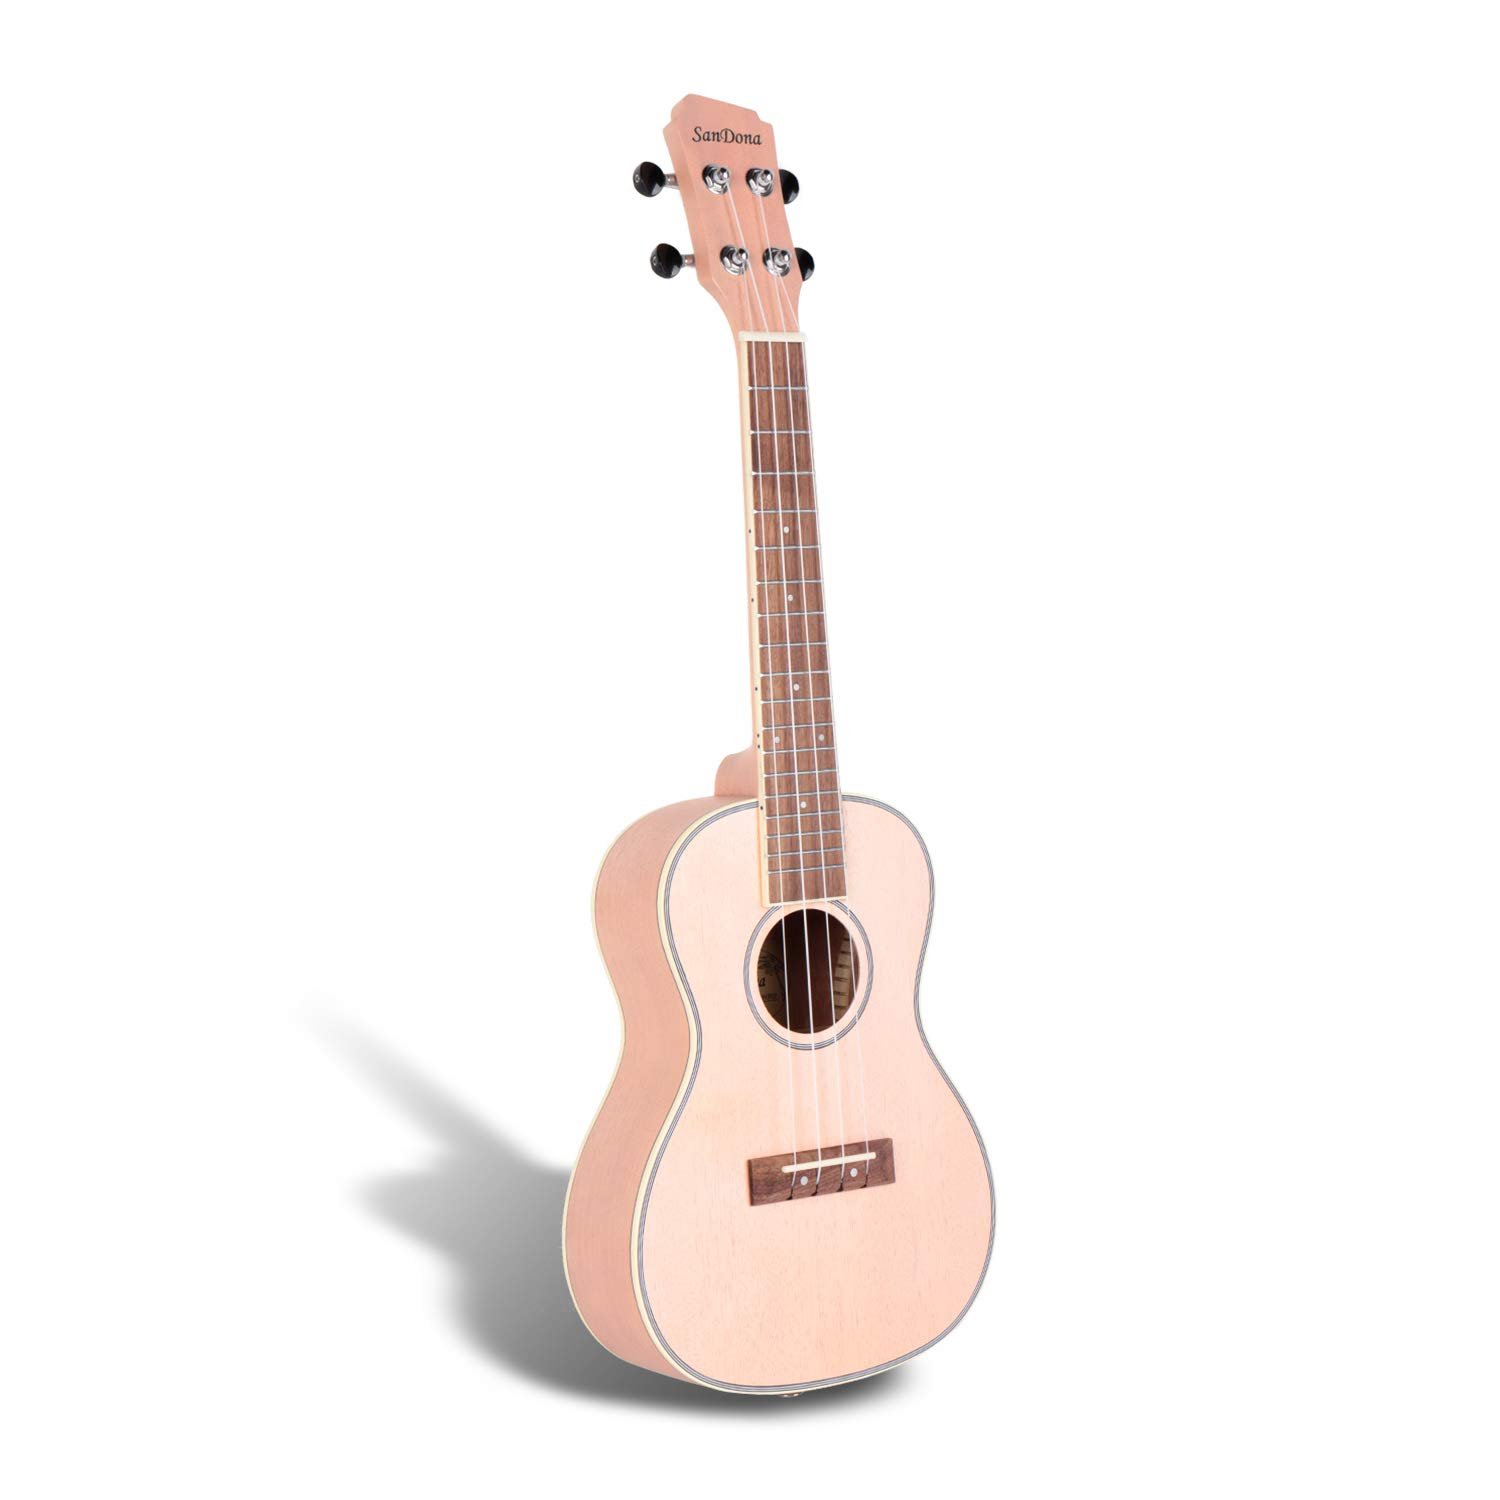 SANDONA Concert Ukulele 24 Inch Kit UKCB-MH | Okoume Solid Wood | Complete Concert Set with Strap, Aquila Strings, Digital Tuner and Gig bag | Accurate Tuning | Pink Champagne